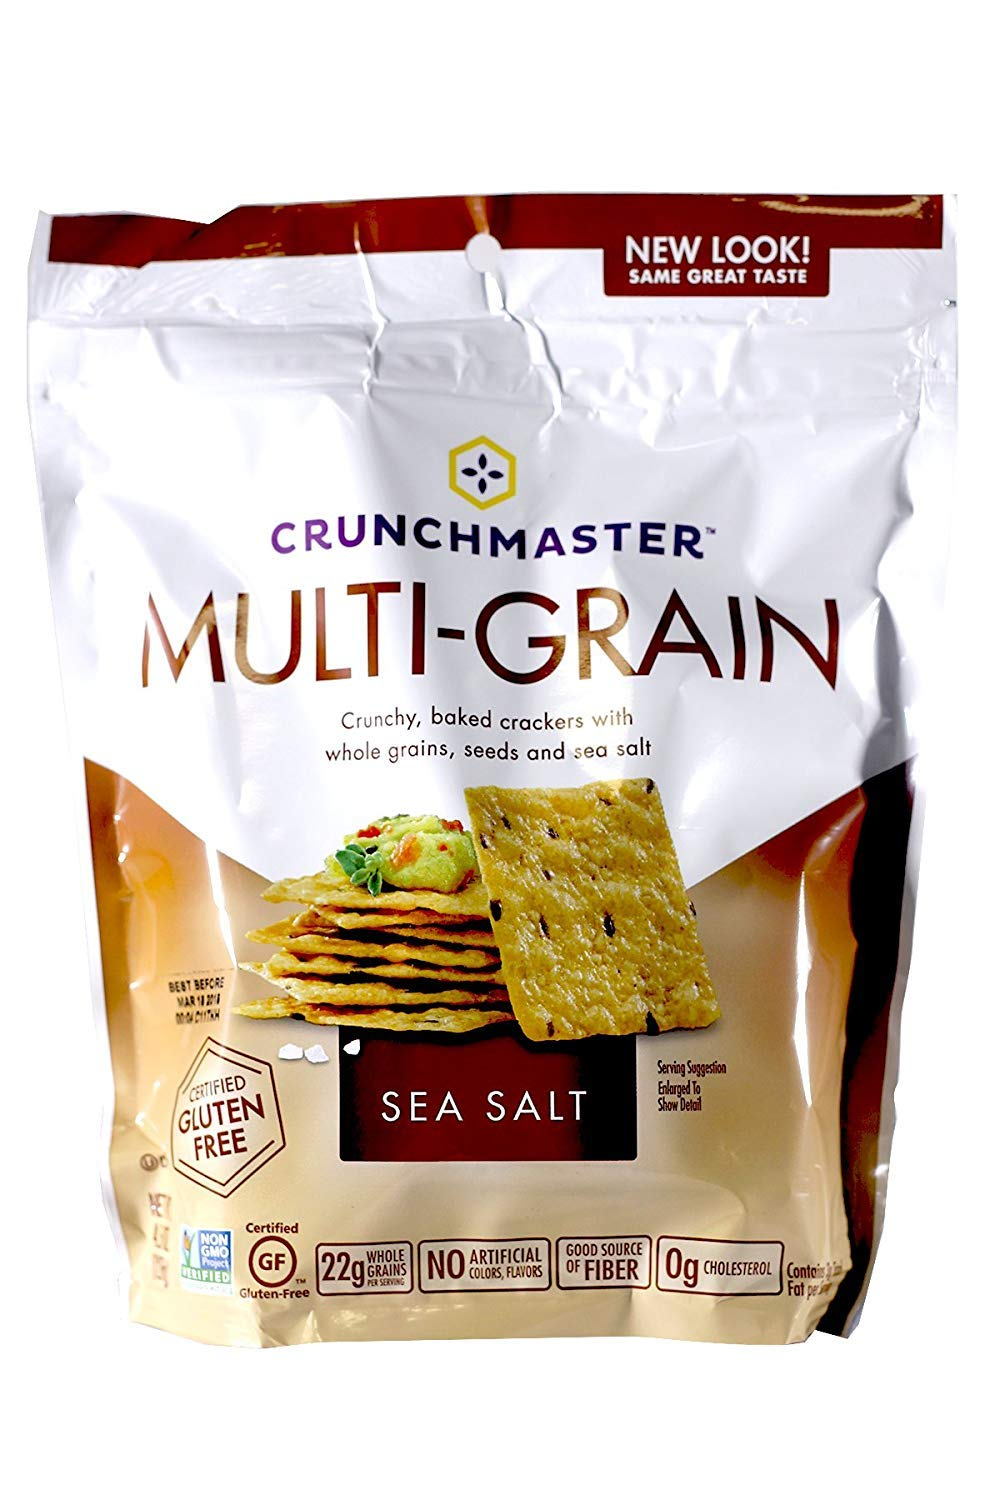 Crunchmaster Cracker - Sea Salt Flavor Gluten-Free, 4oz (Pack of 2)  by Crunchmaster